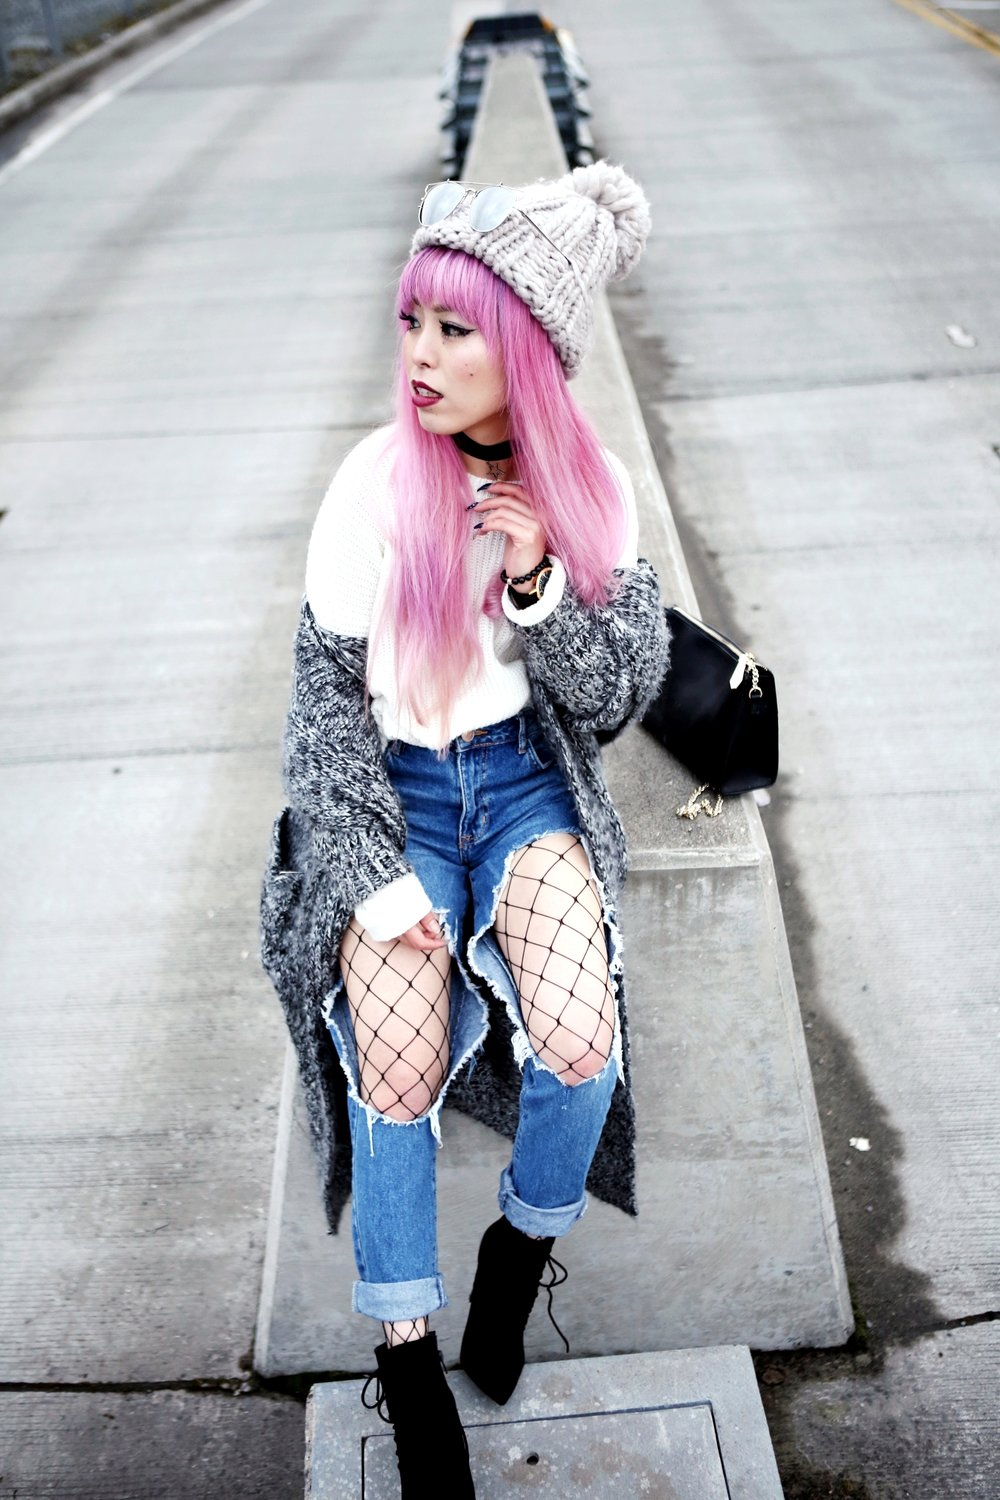 Asos Pom Pom Chunky Beanie_Forever 21 Sweater & Distressed Boyfriend Jeans_ASOS Fishnet Tights_Zara Star Velvet Chocker & Black Lace Up Boots_Gray Chunky Long Cardigan_Free People Mirrored Sunglasses_Pink Hair_Seattle Fashion Style Blogger_Japanese